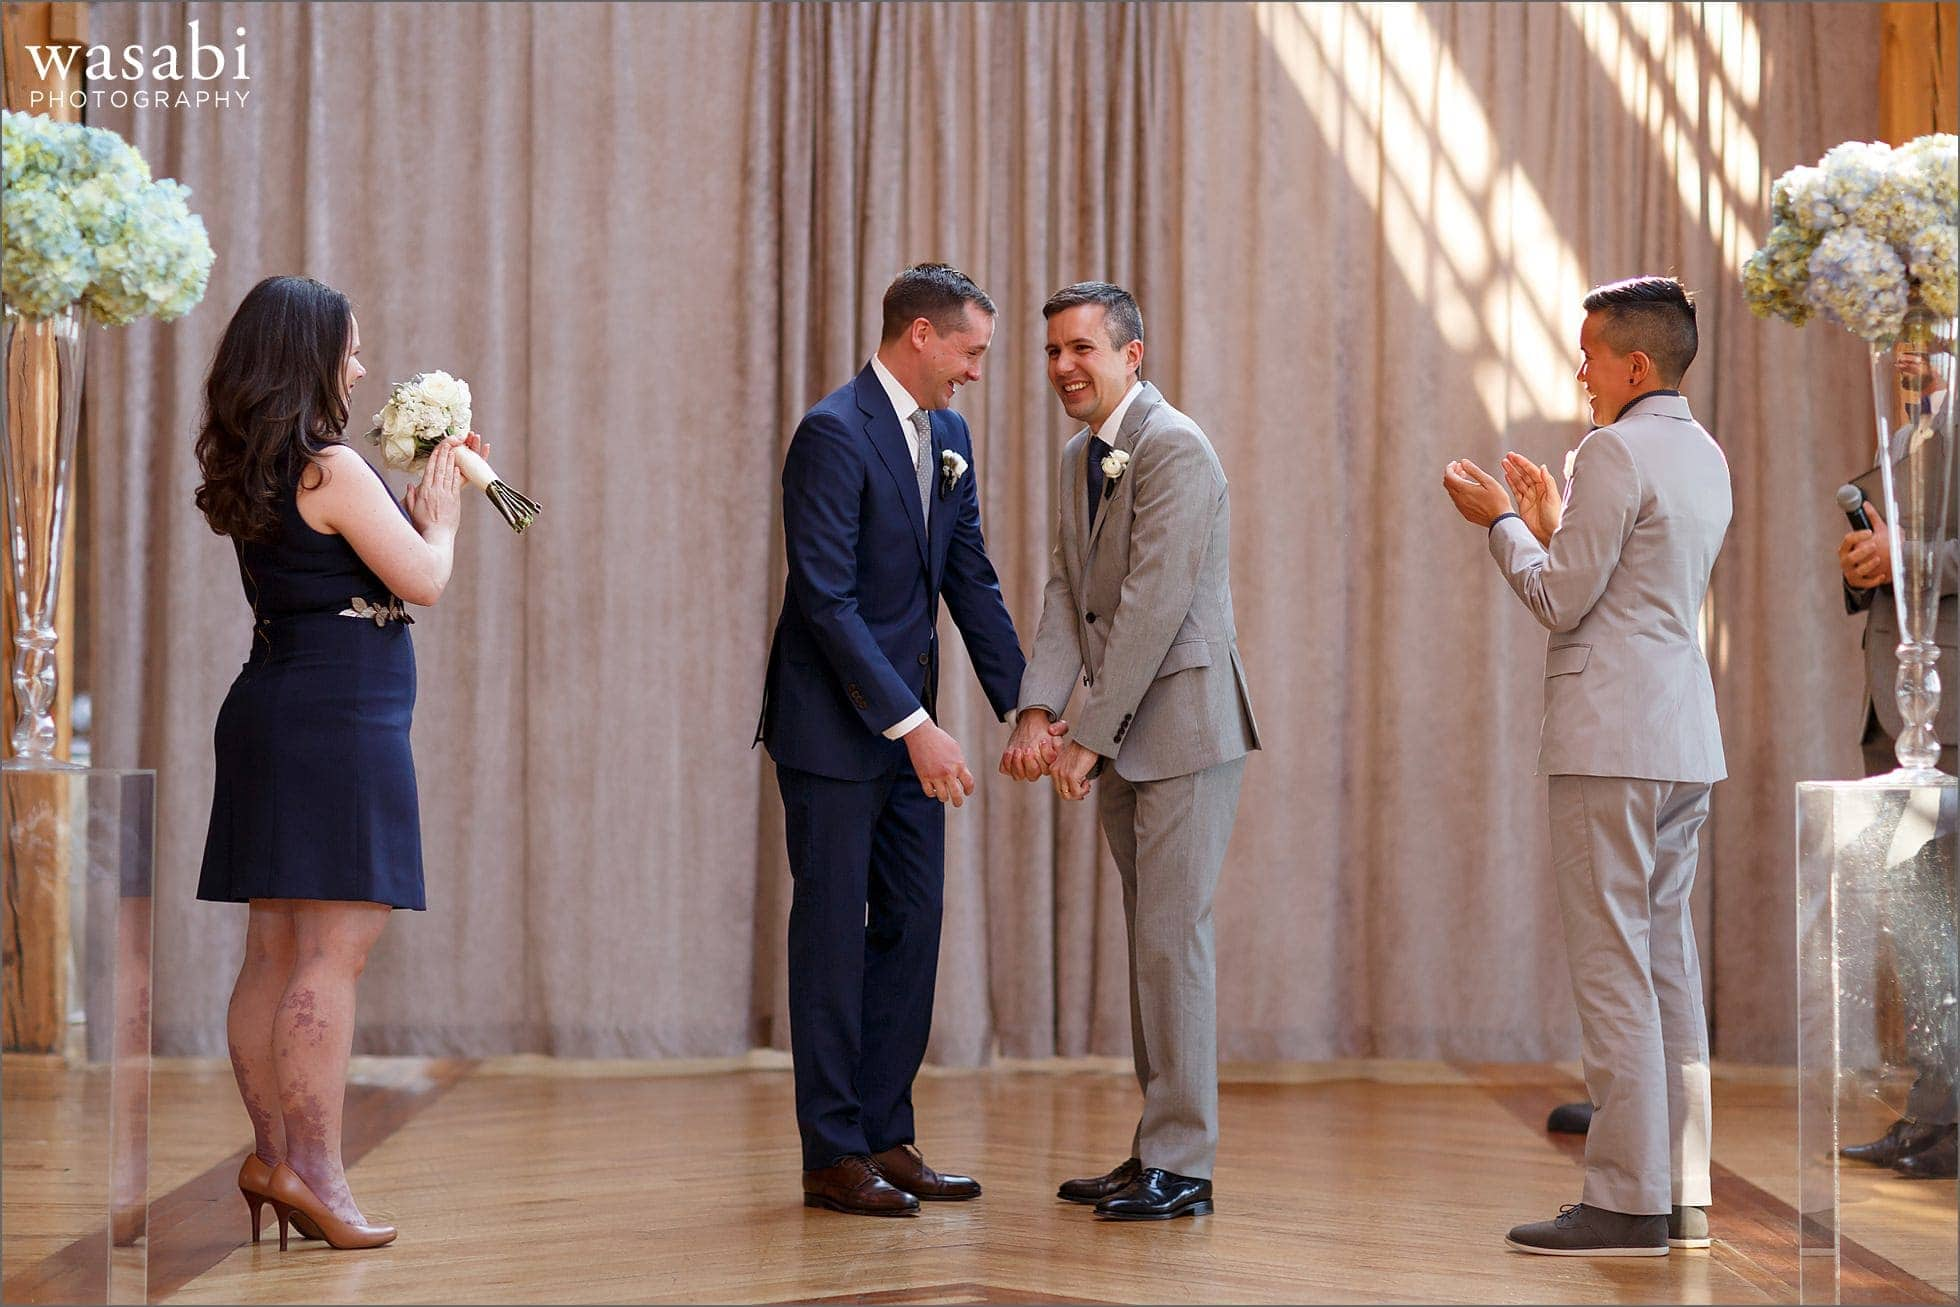 grooms react after being anounced husbands during wedding ceremony at Bridgeport Art Center